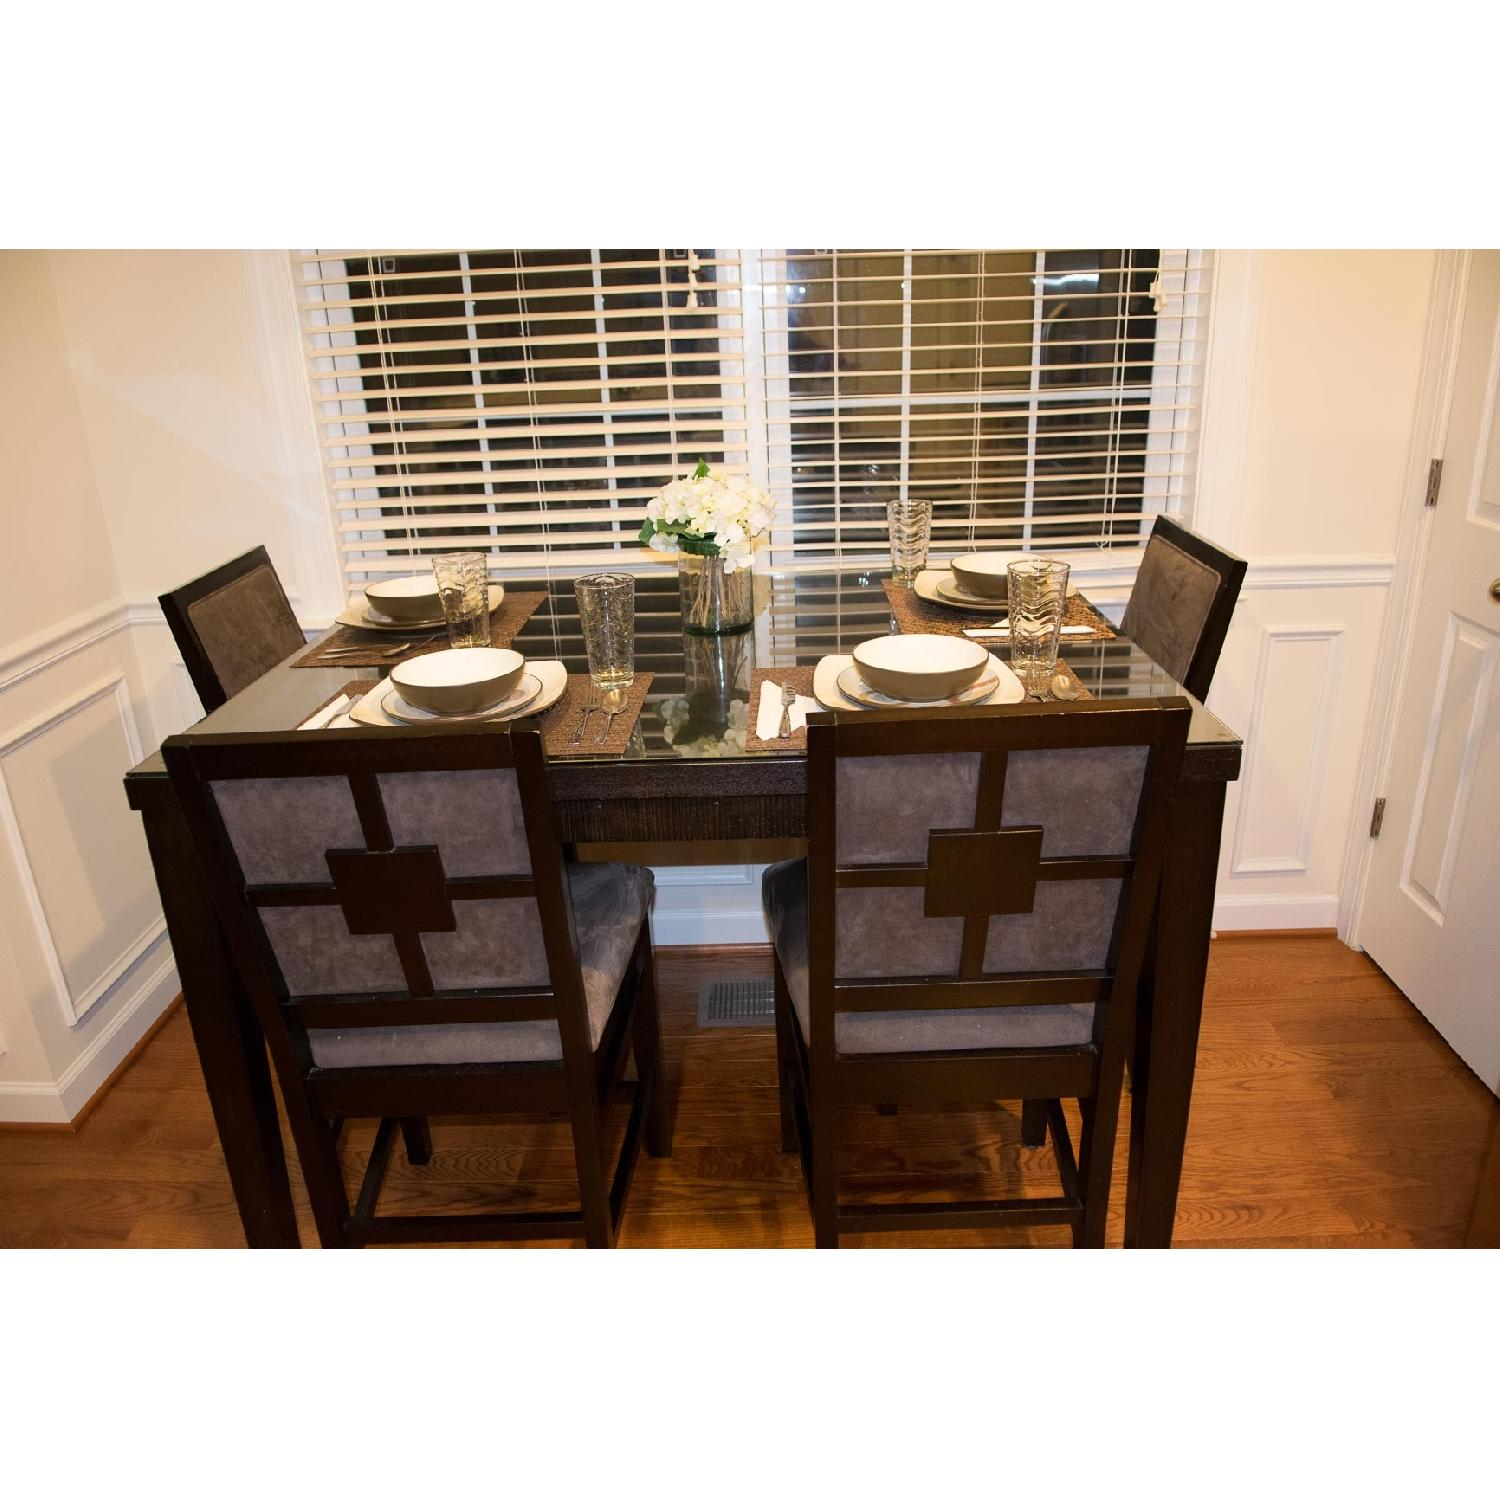 Value City Furniture Espresso High Top Expandable Dining Room Table w/ 4  Chairs